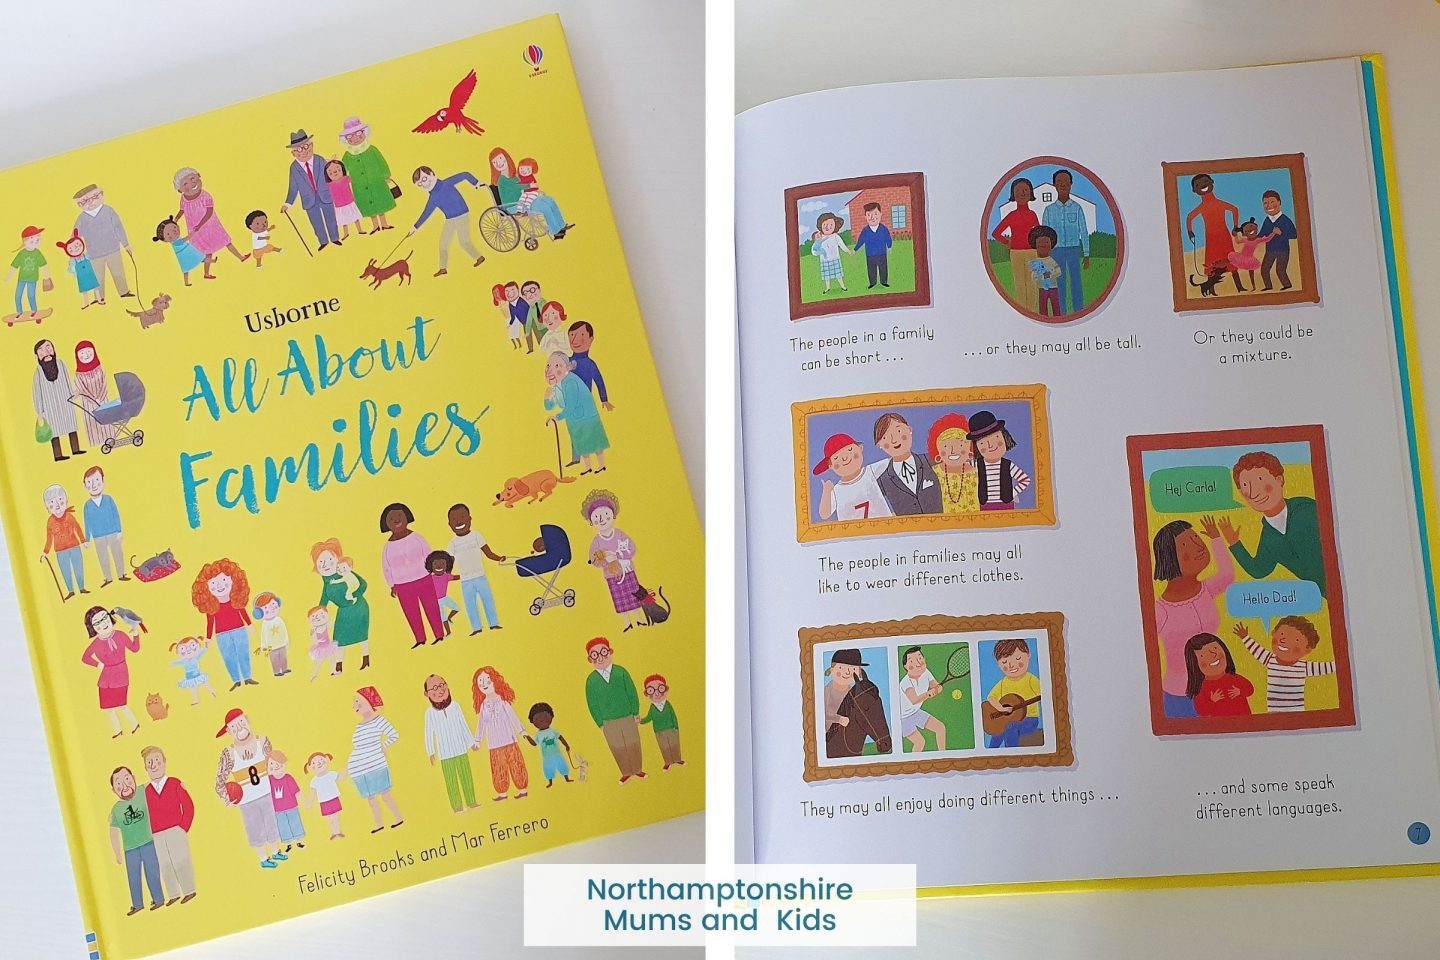 There's a number of amazing child development books covering topics such as mental health, childrens sleep, diversity, families and feelings.